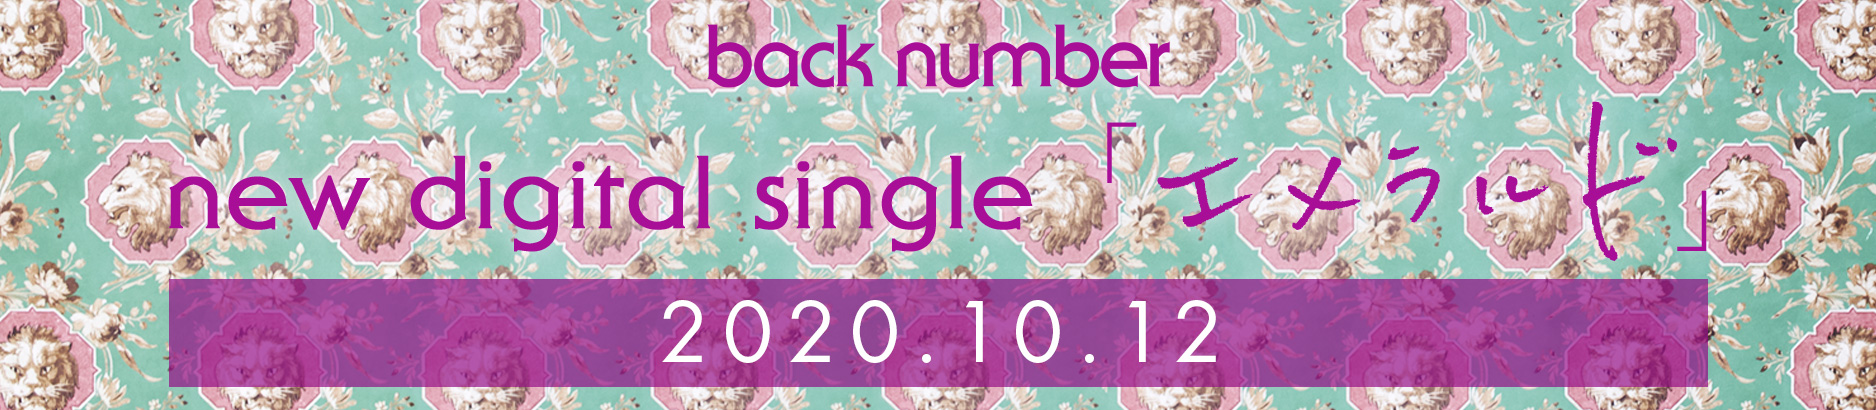 back number new digital single エメラルド